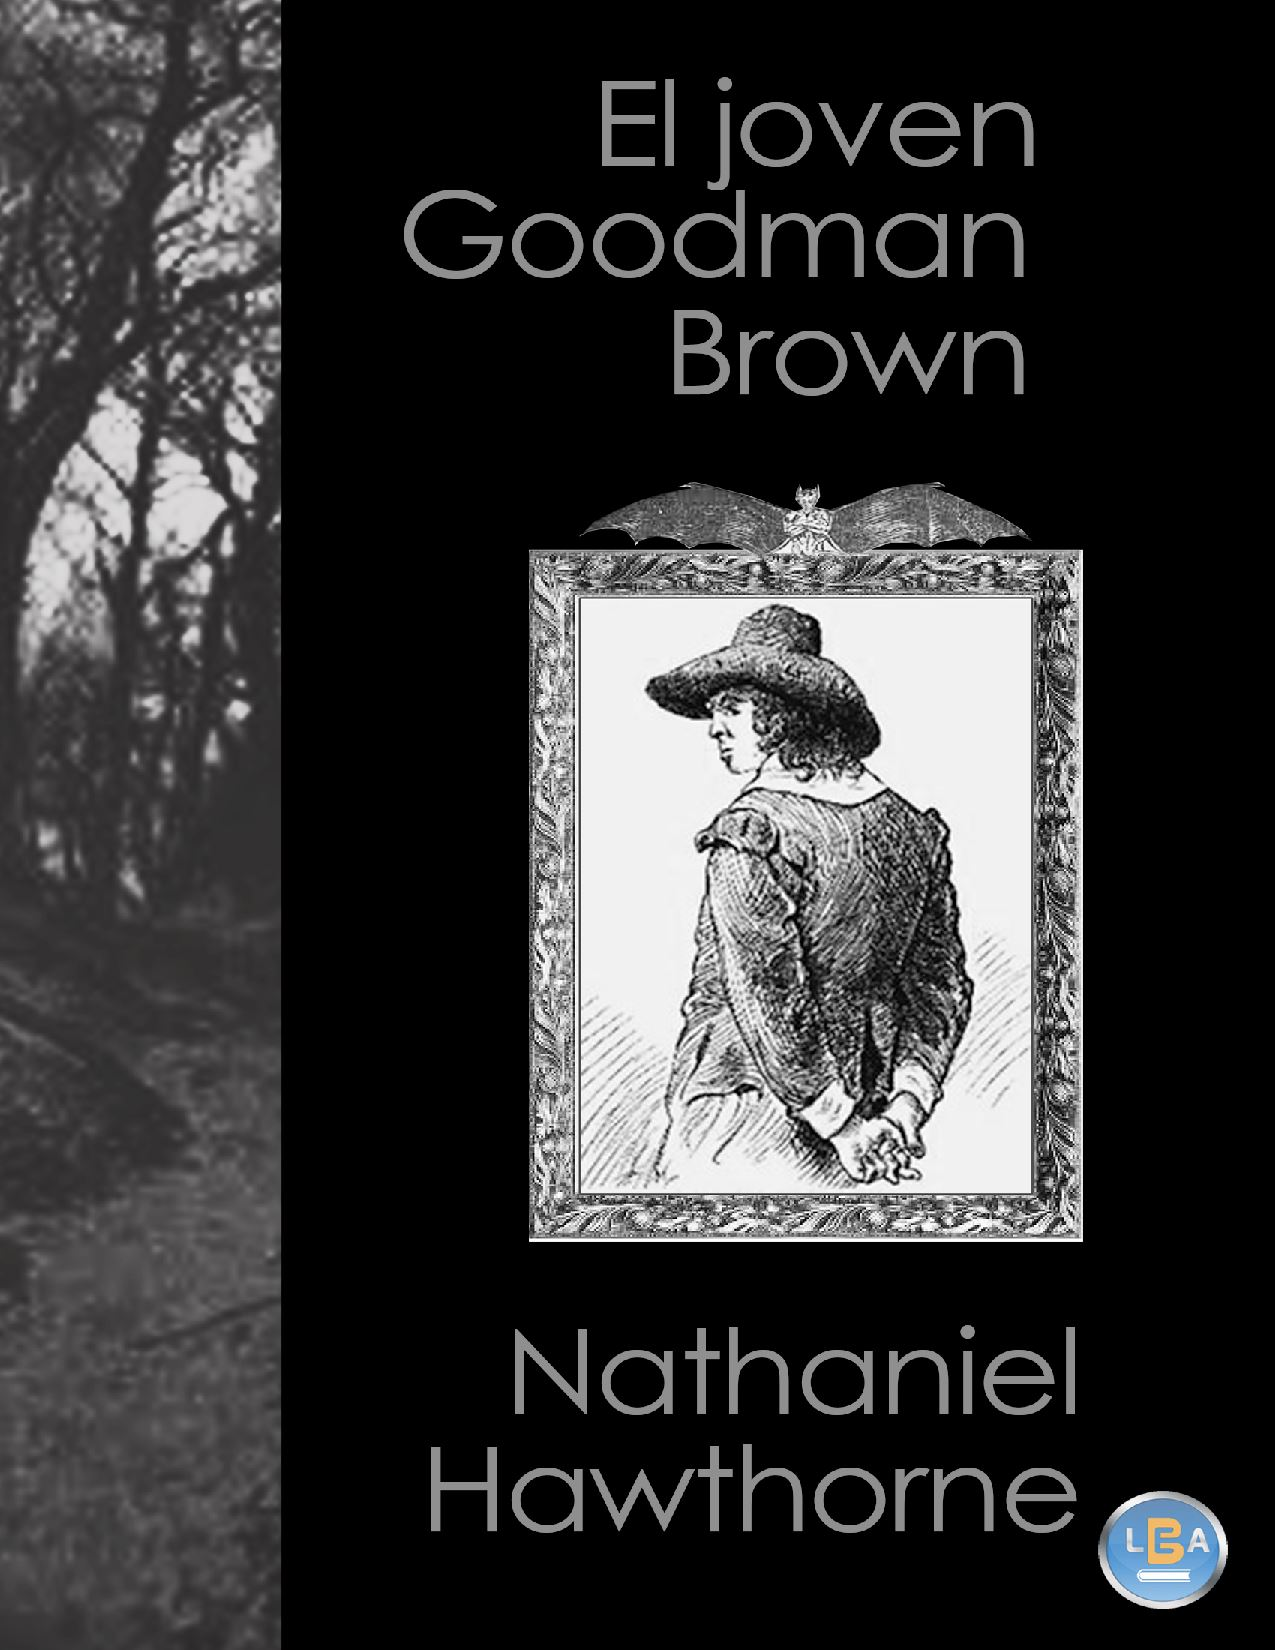 criticism and reflection on good versus evil in young goodman brown by nathaniel hawthorne [1] young goodman brown came forth at sunset, into the street of salem village, but put his head back, after crossing the threshold, to [8] with this excellent resolve for the future, goodman brown felt himself justified in making more haste on his present evil purpose he had taken a dreary road.